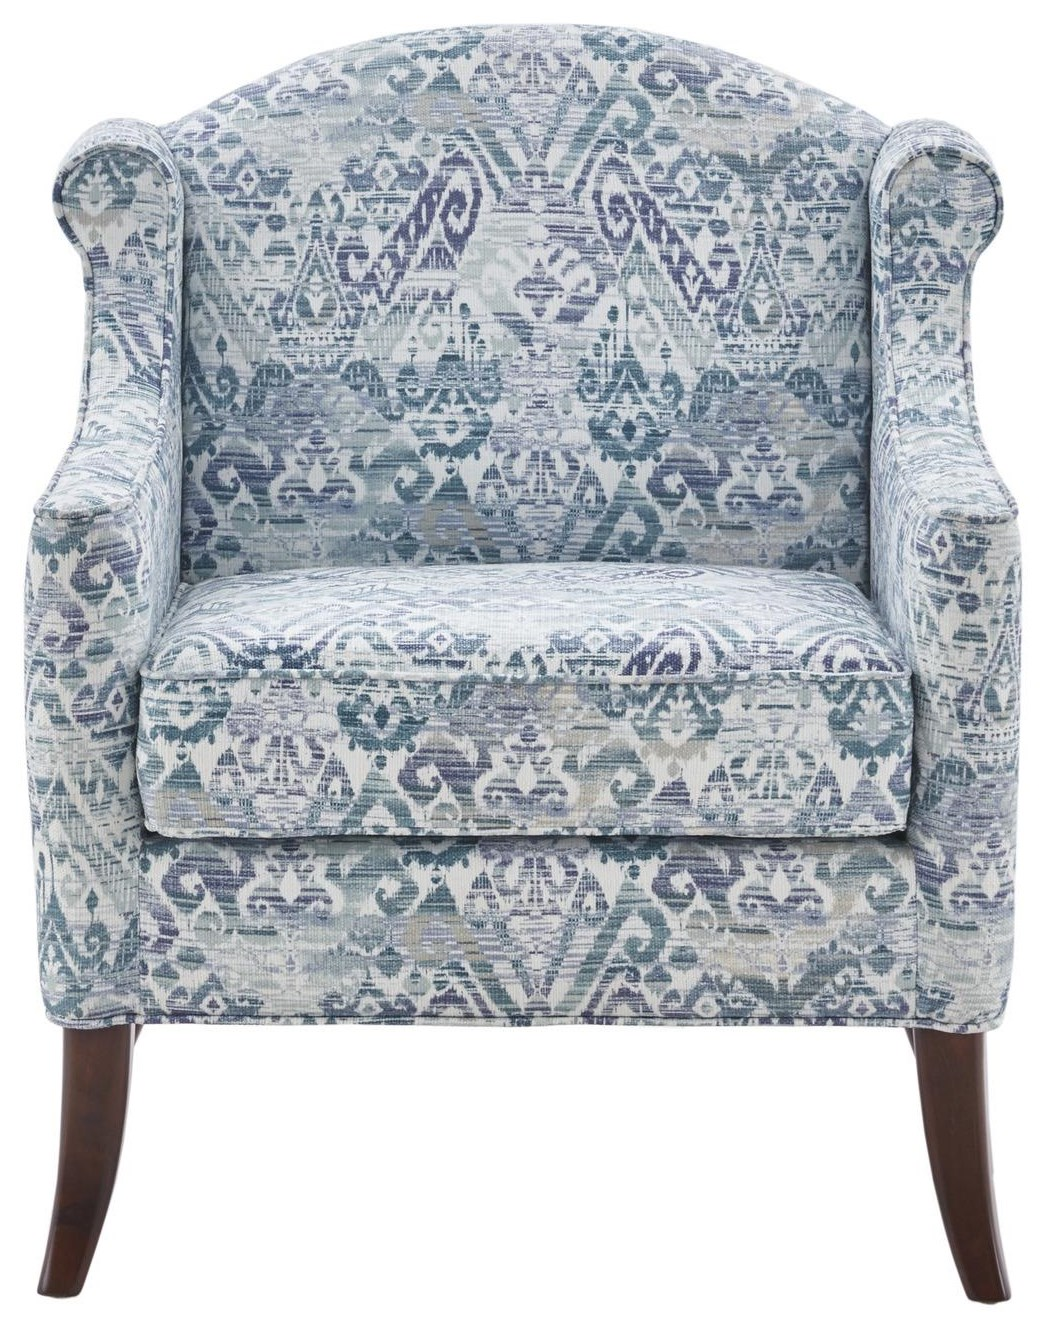 Home Accents Blue Print Accent Chair at Belfort Furniture